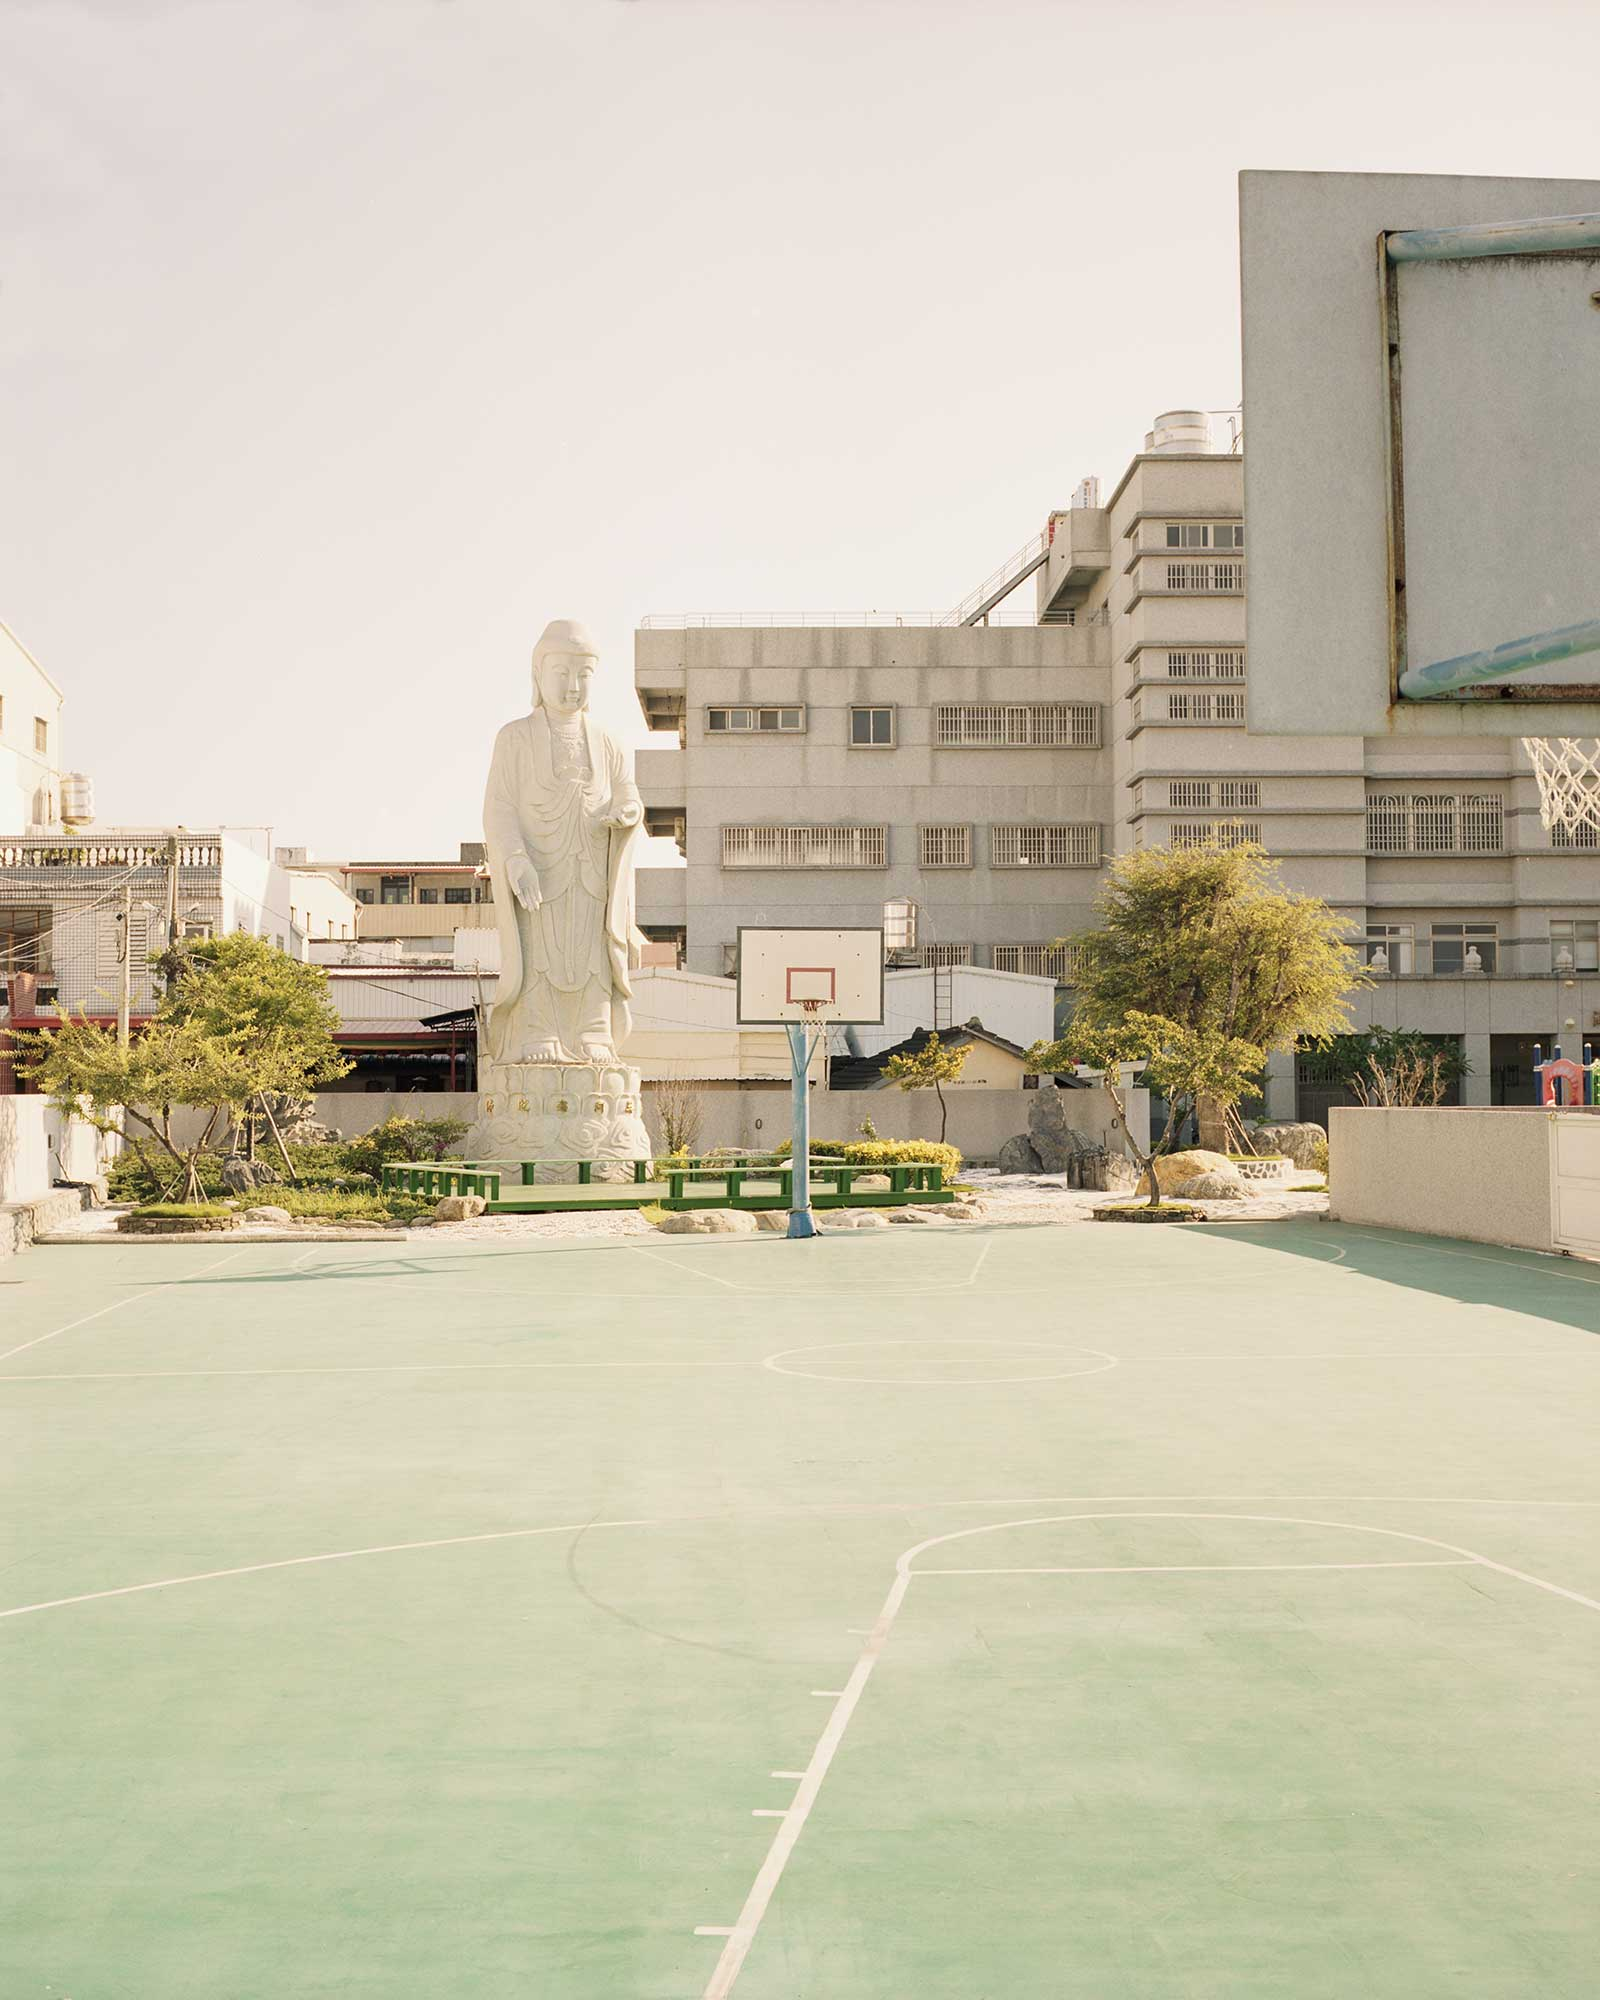 Image of Basketball Court in Taiwan